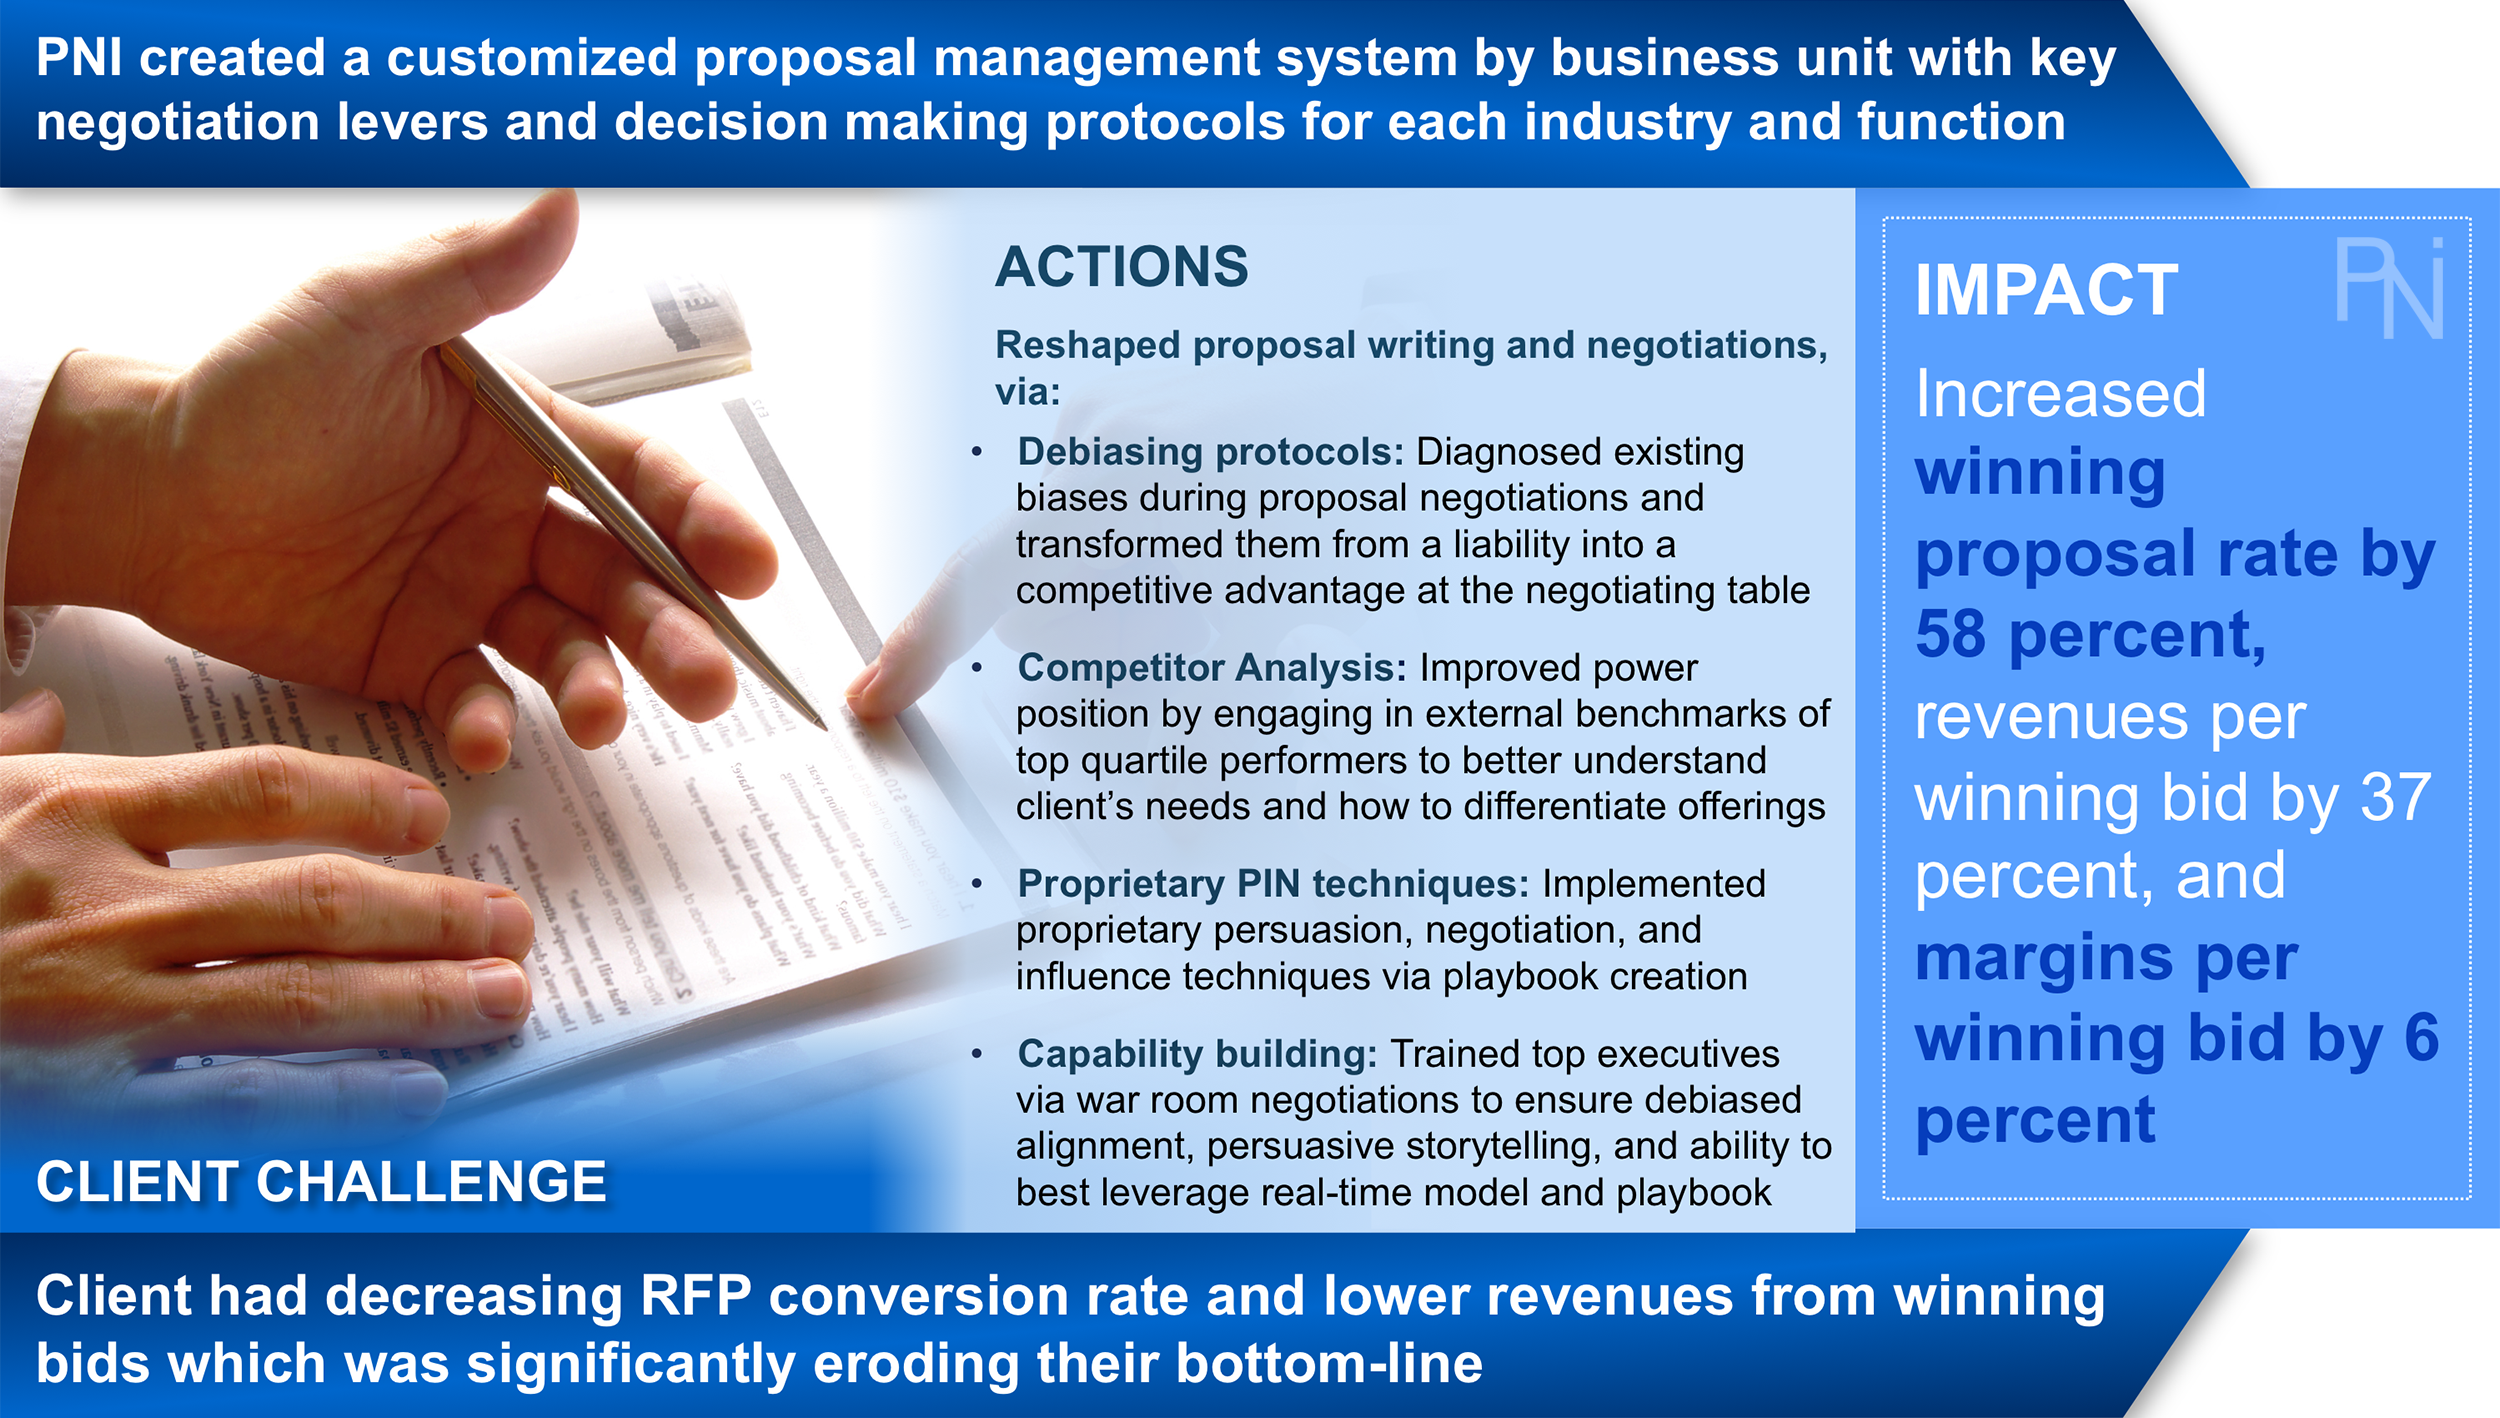 Proposal Results 2 - PNI.png